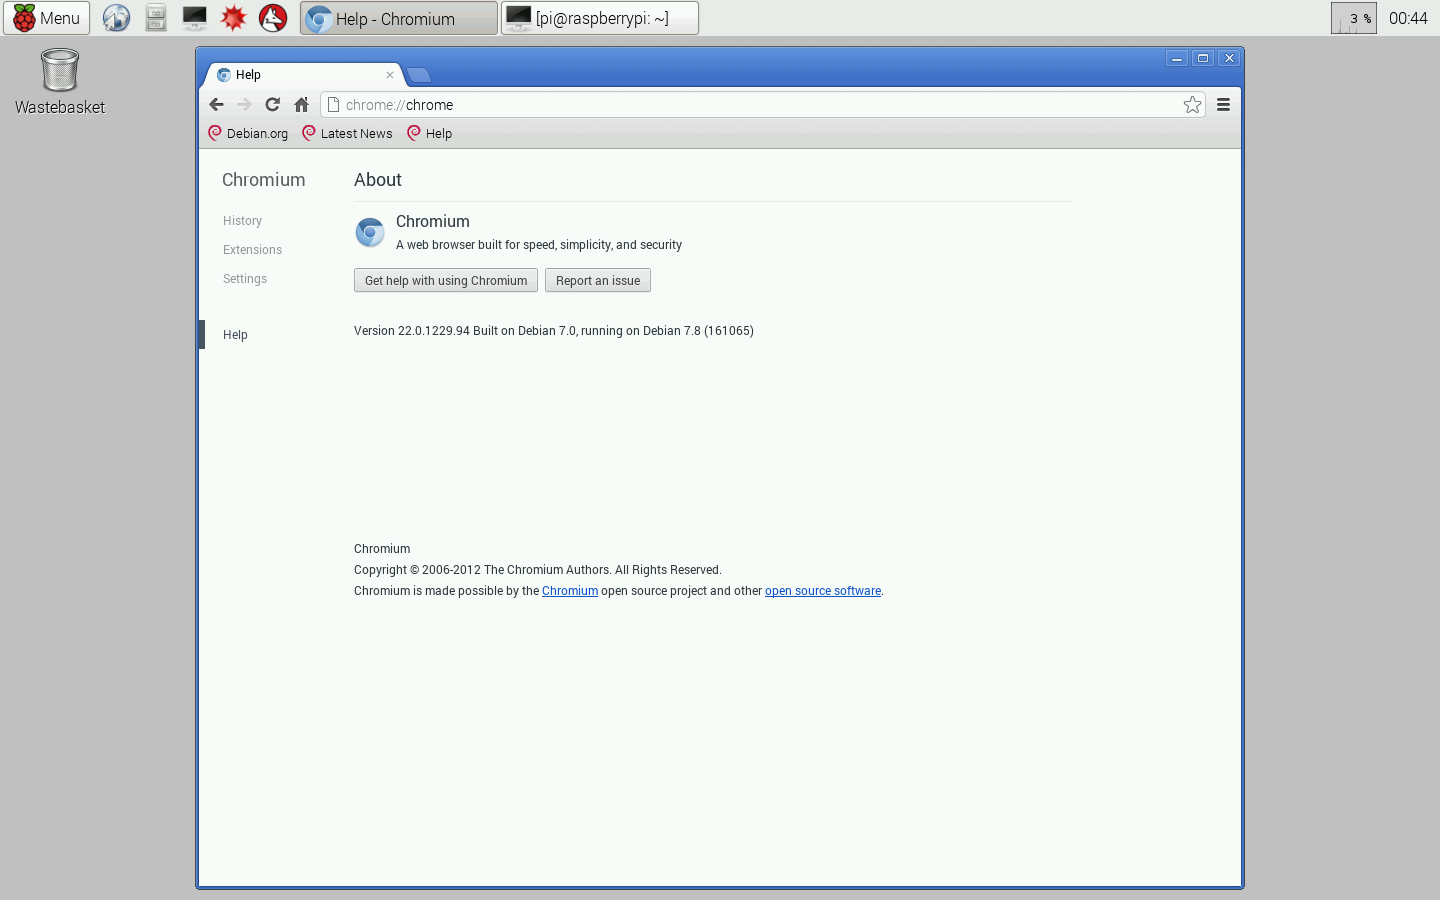 Hello Raspberry Pi: Install and run Chromium web browser on